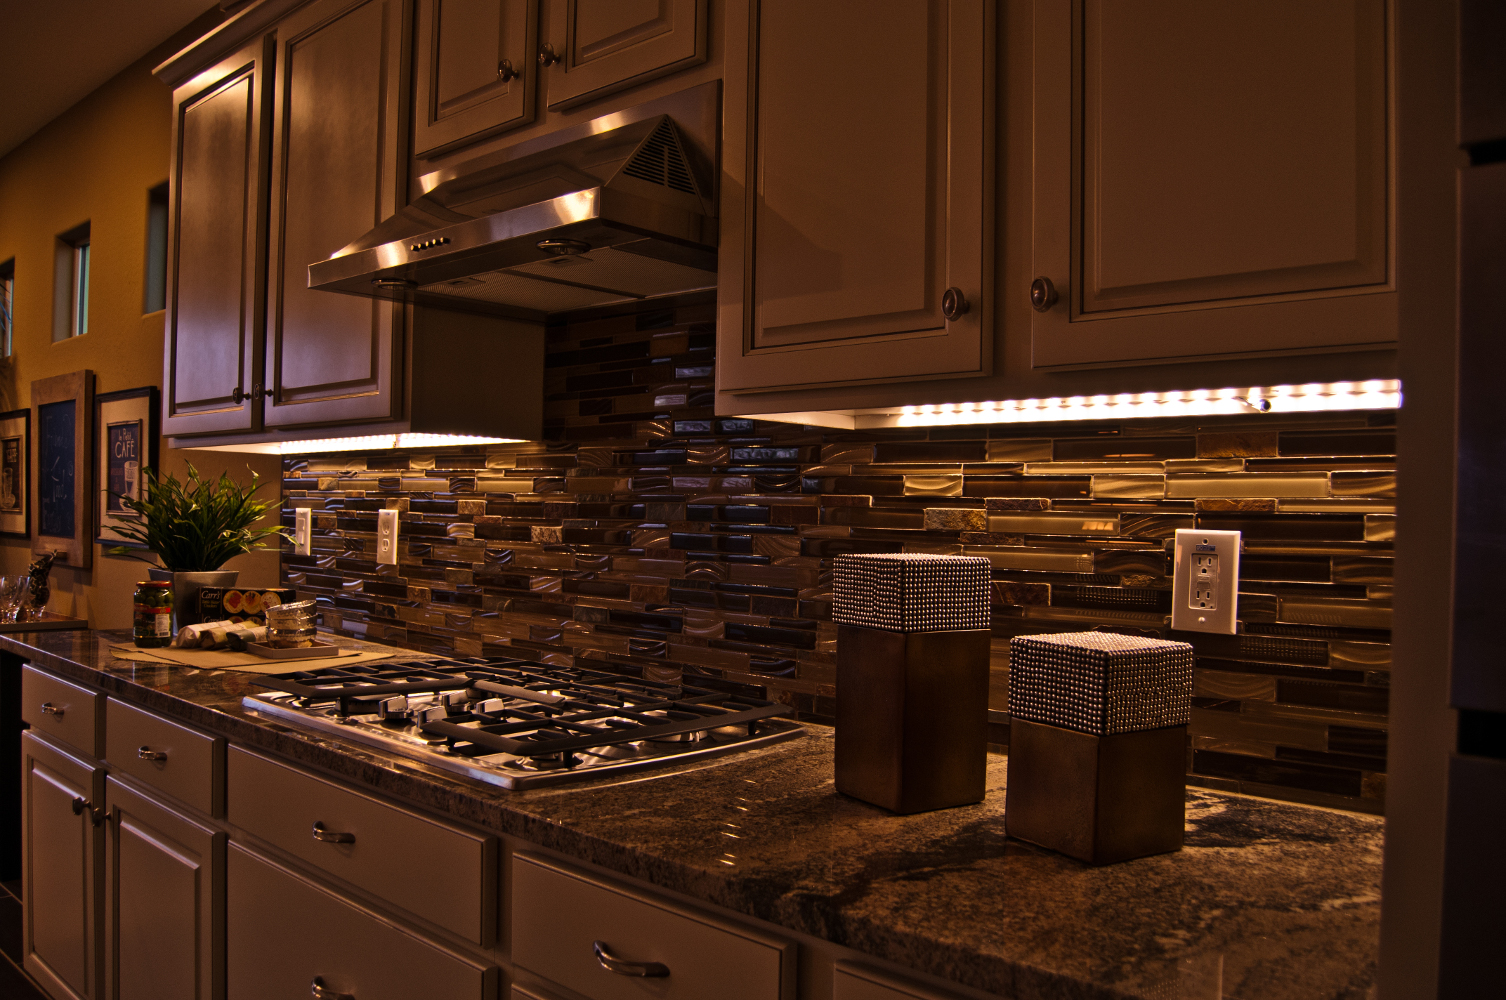 Under Cabinet LED Lighting Modern Kitchen With Under Cabinet LED Light